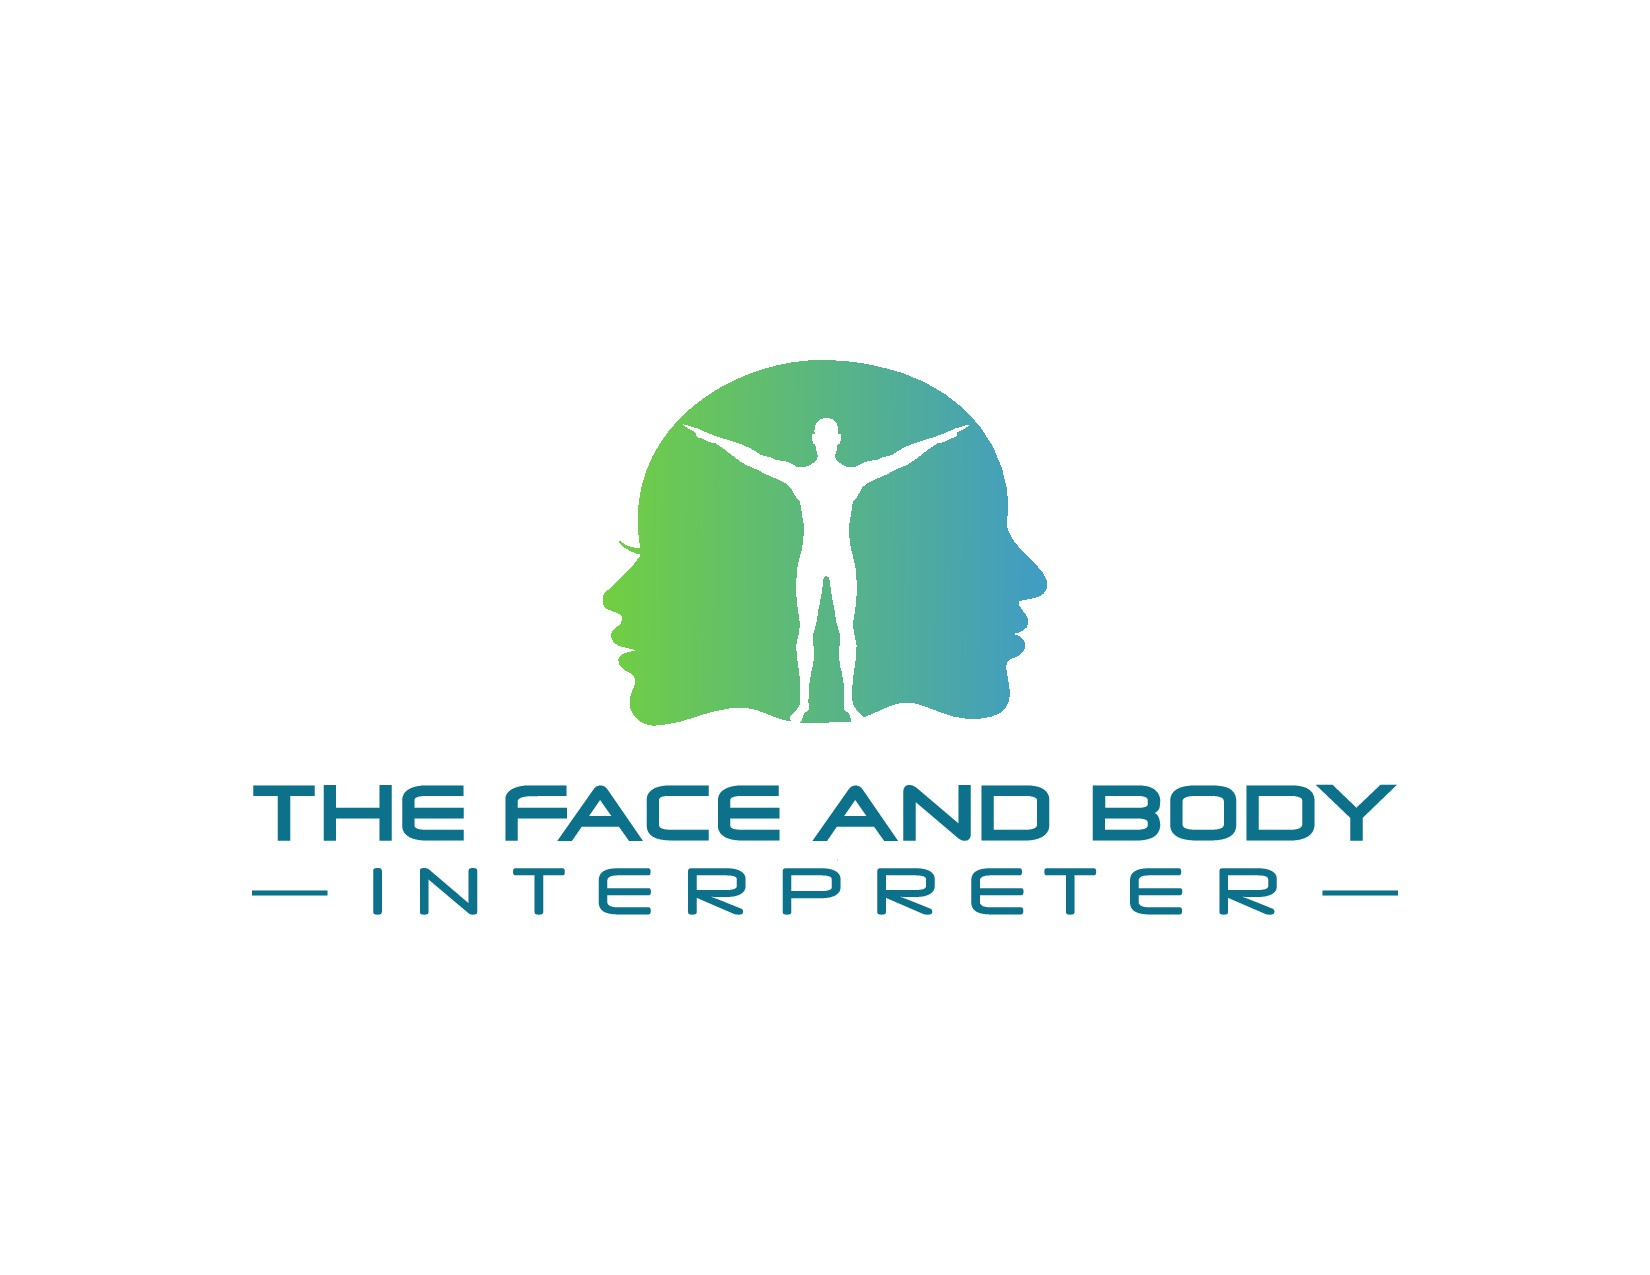 The Face and Body Interpreter